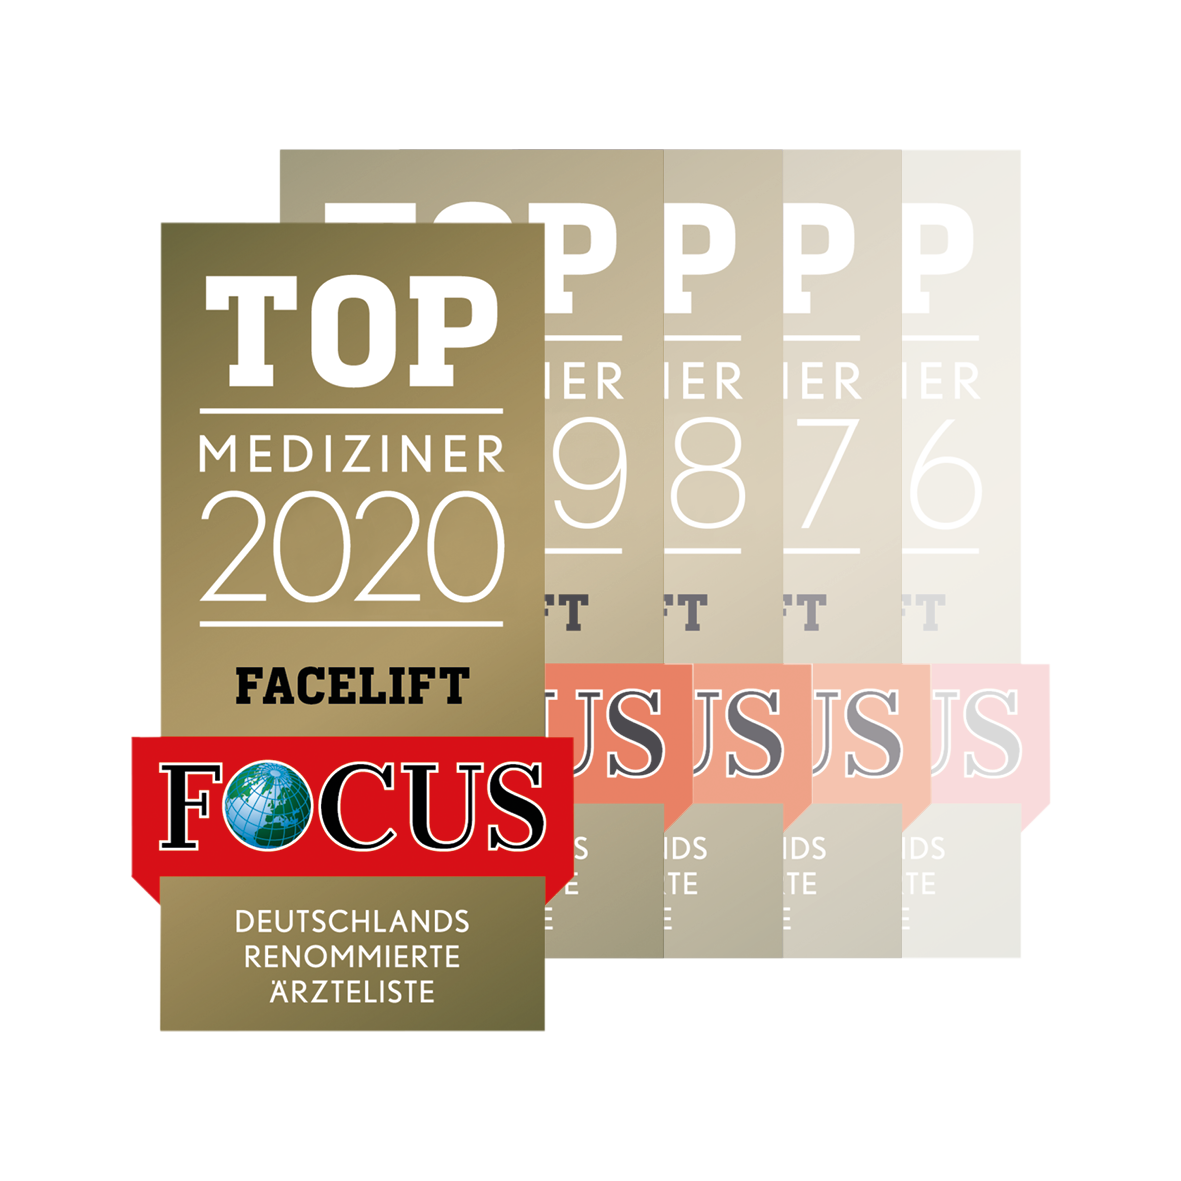 Top Mediziner 2020 - Facelift - FOCUS